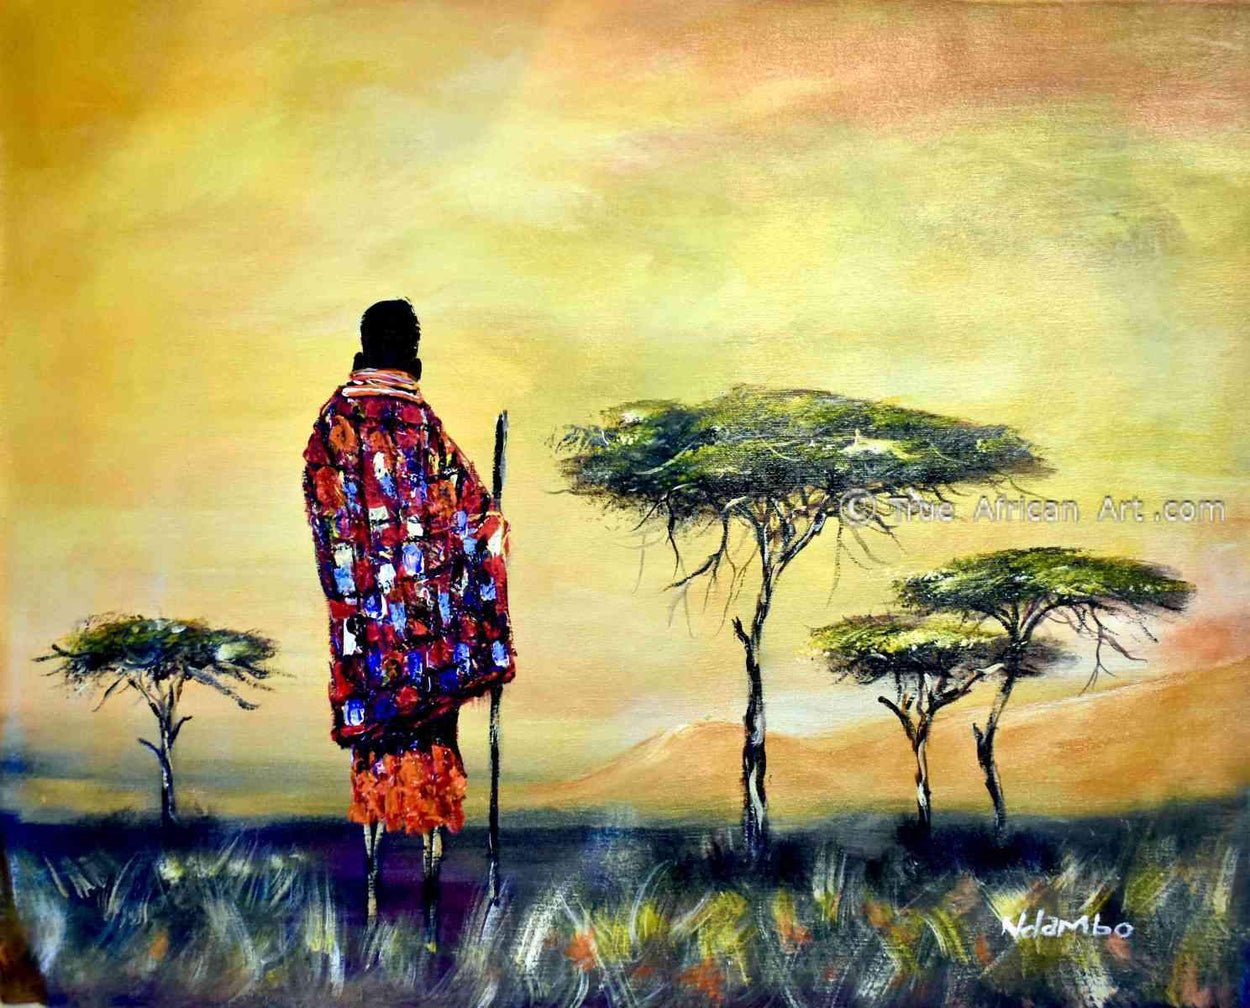 African Art Paintings by John Ndambo  |  Kenya  |  True African Art .com